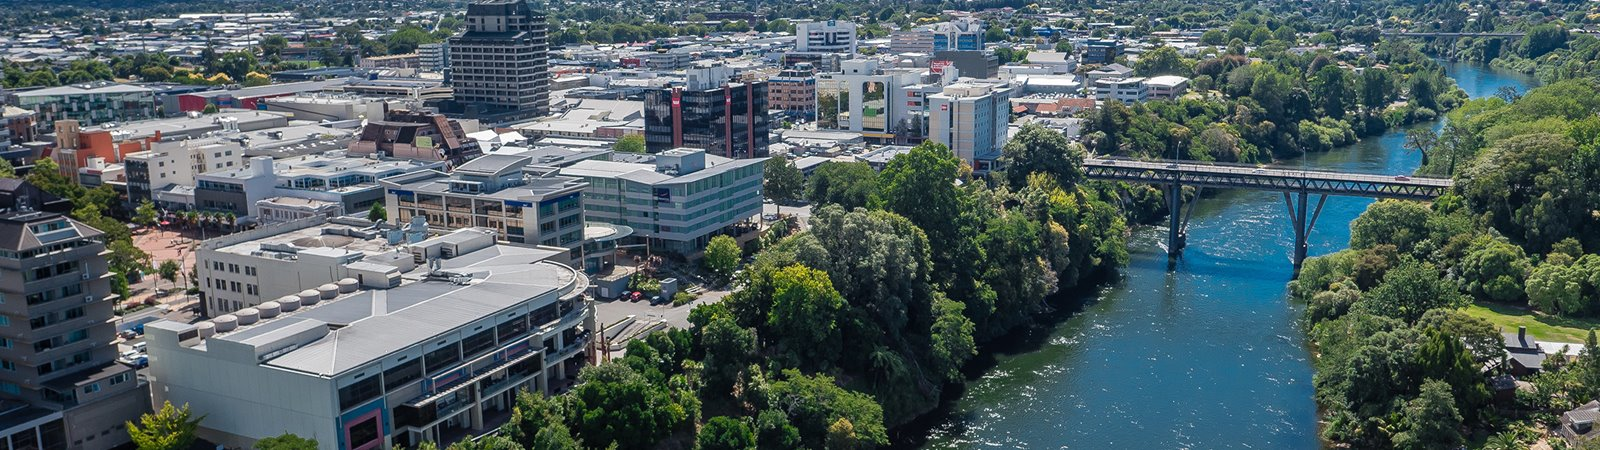 Hamilton City Council - Hamilton CBD and Waikato River WEB